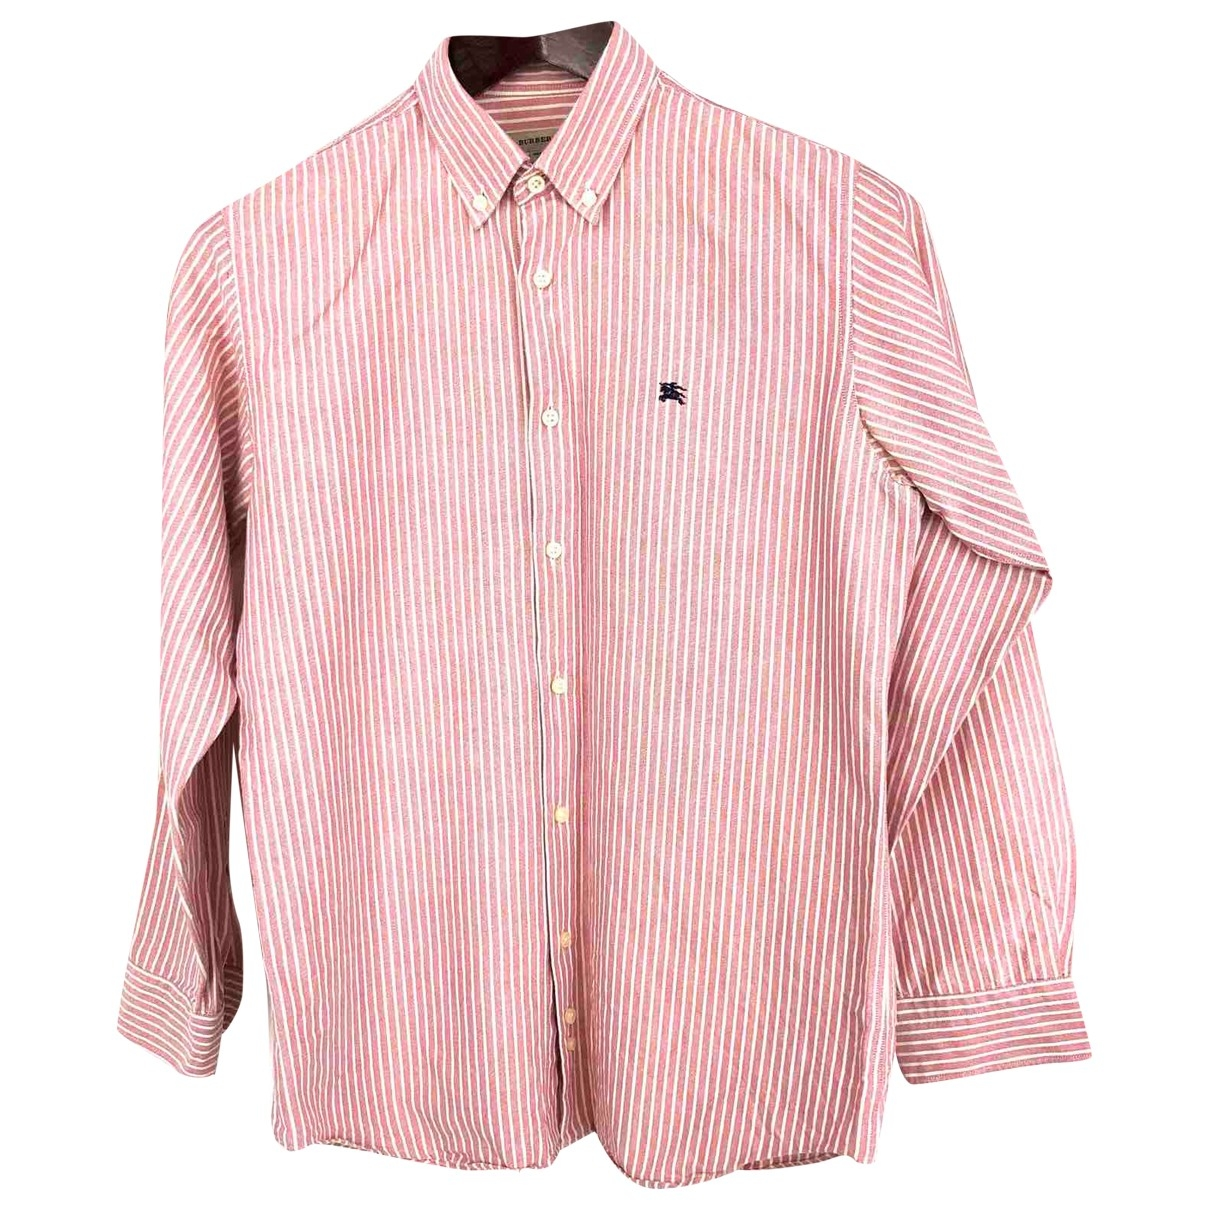 Burberry \N Multicolour Cotton Shirts for Men S International